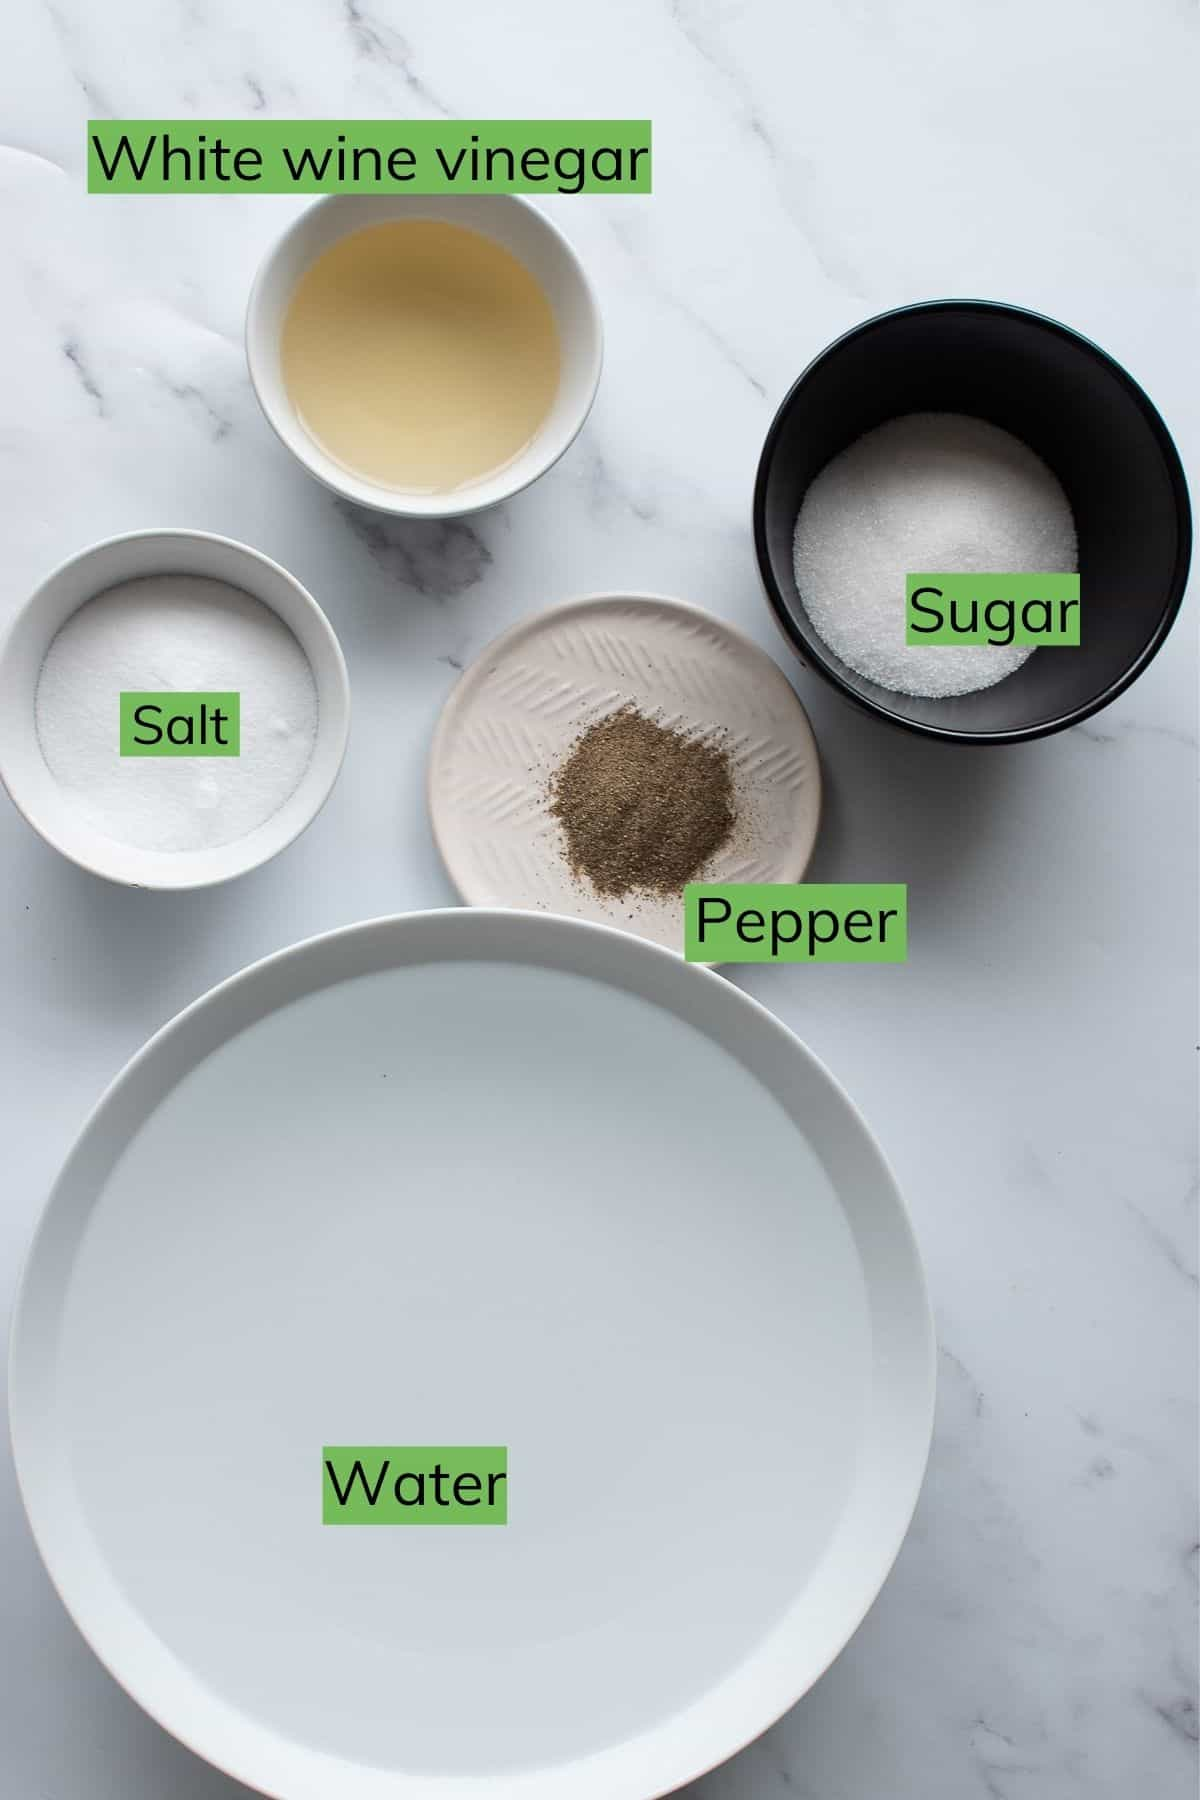 The ingredients needed to make brine laid out on a table.